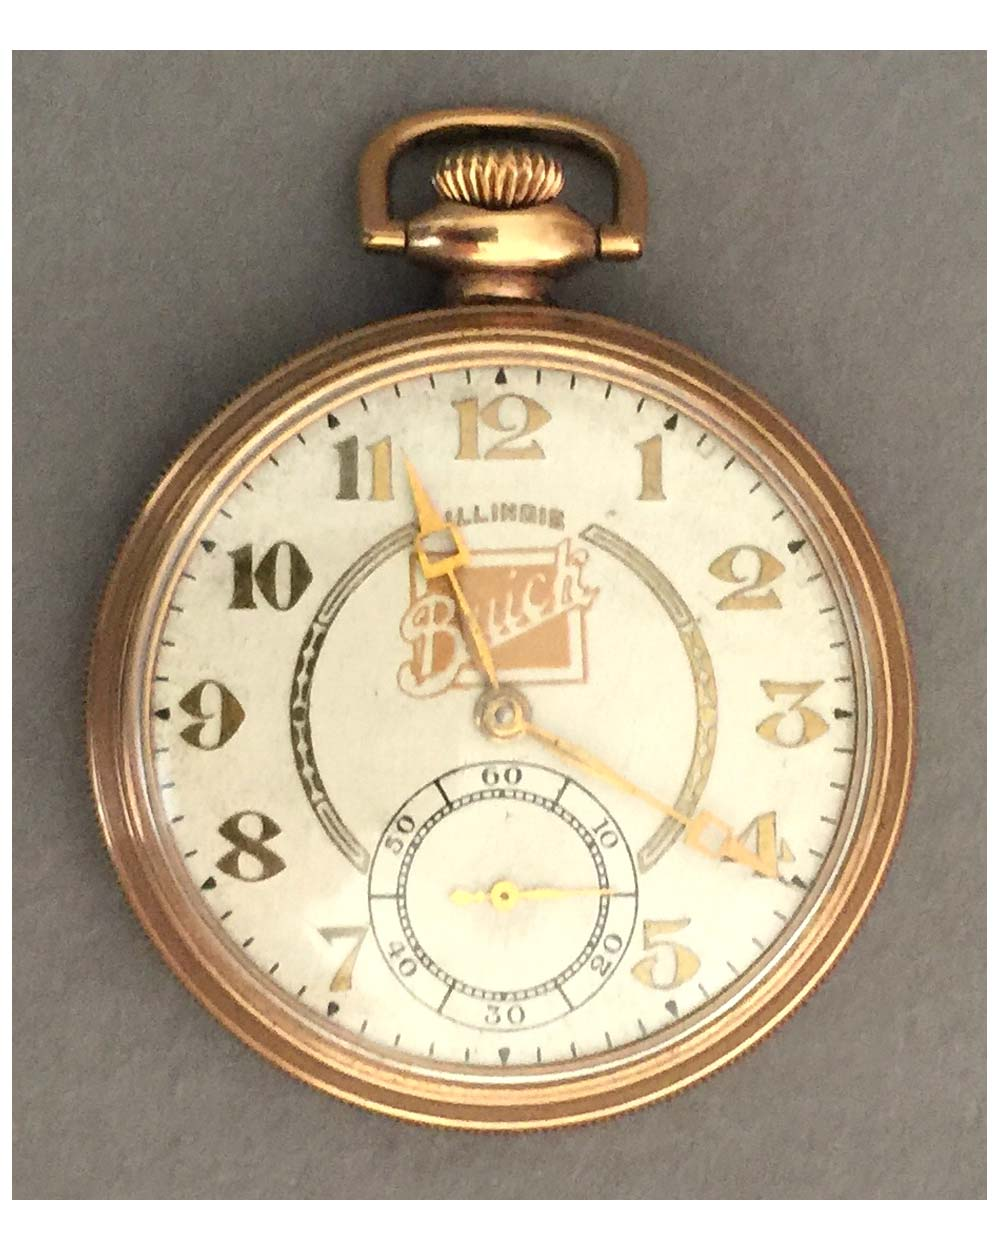 "Vintage Buick pocket watch By Illinois<br><span style=""color: #ff0000;"">$690 -25% = $518</span>"